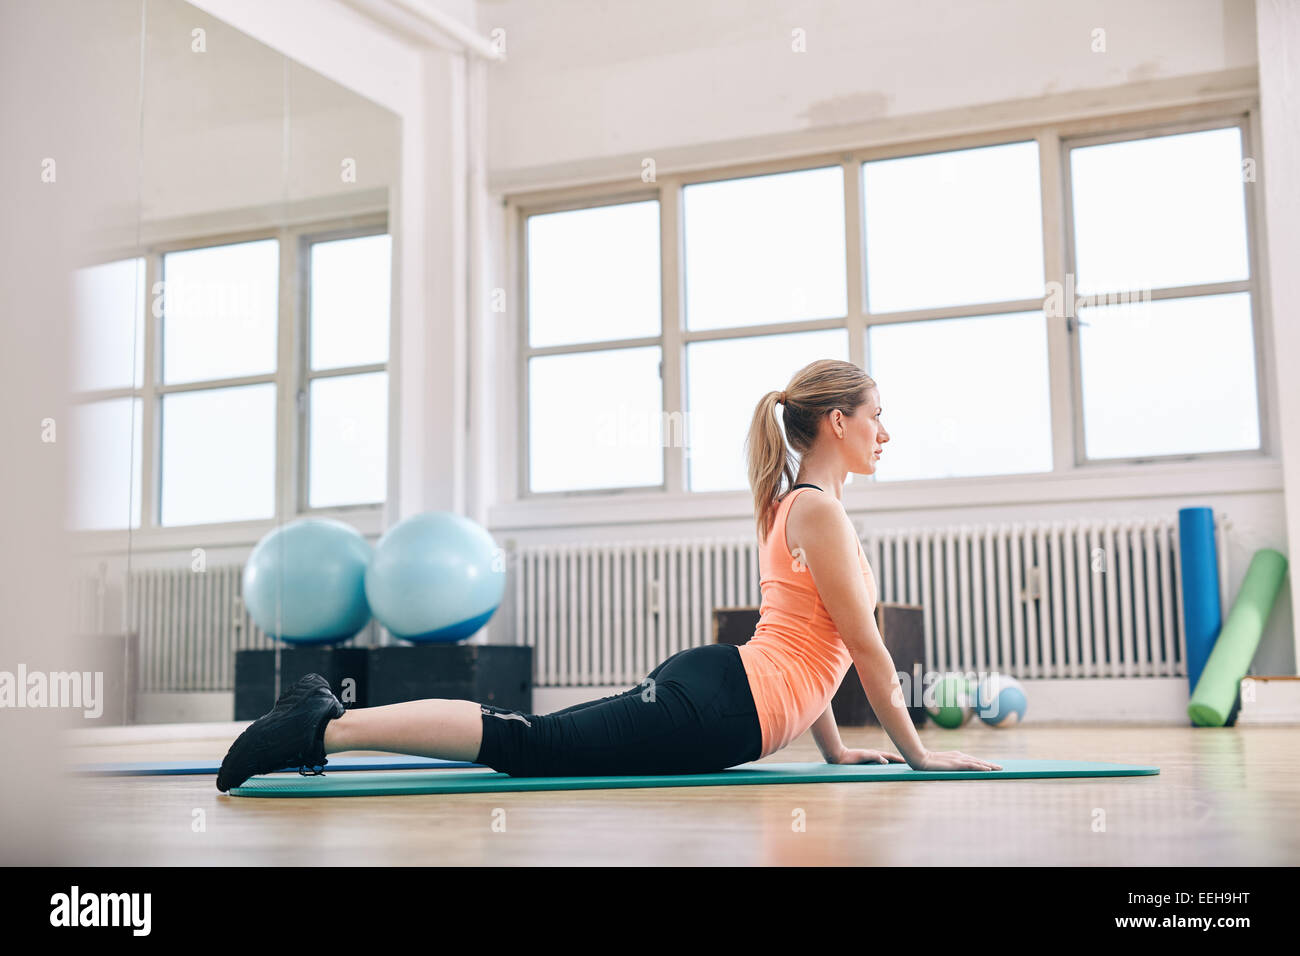 Woman doing core stretch on fitness mat. Attractive young woman doing yoga at gym. - Stock Image